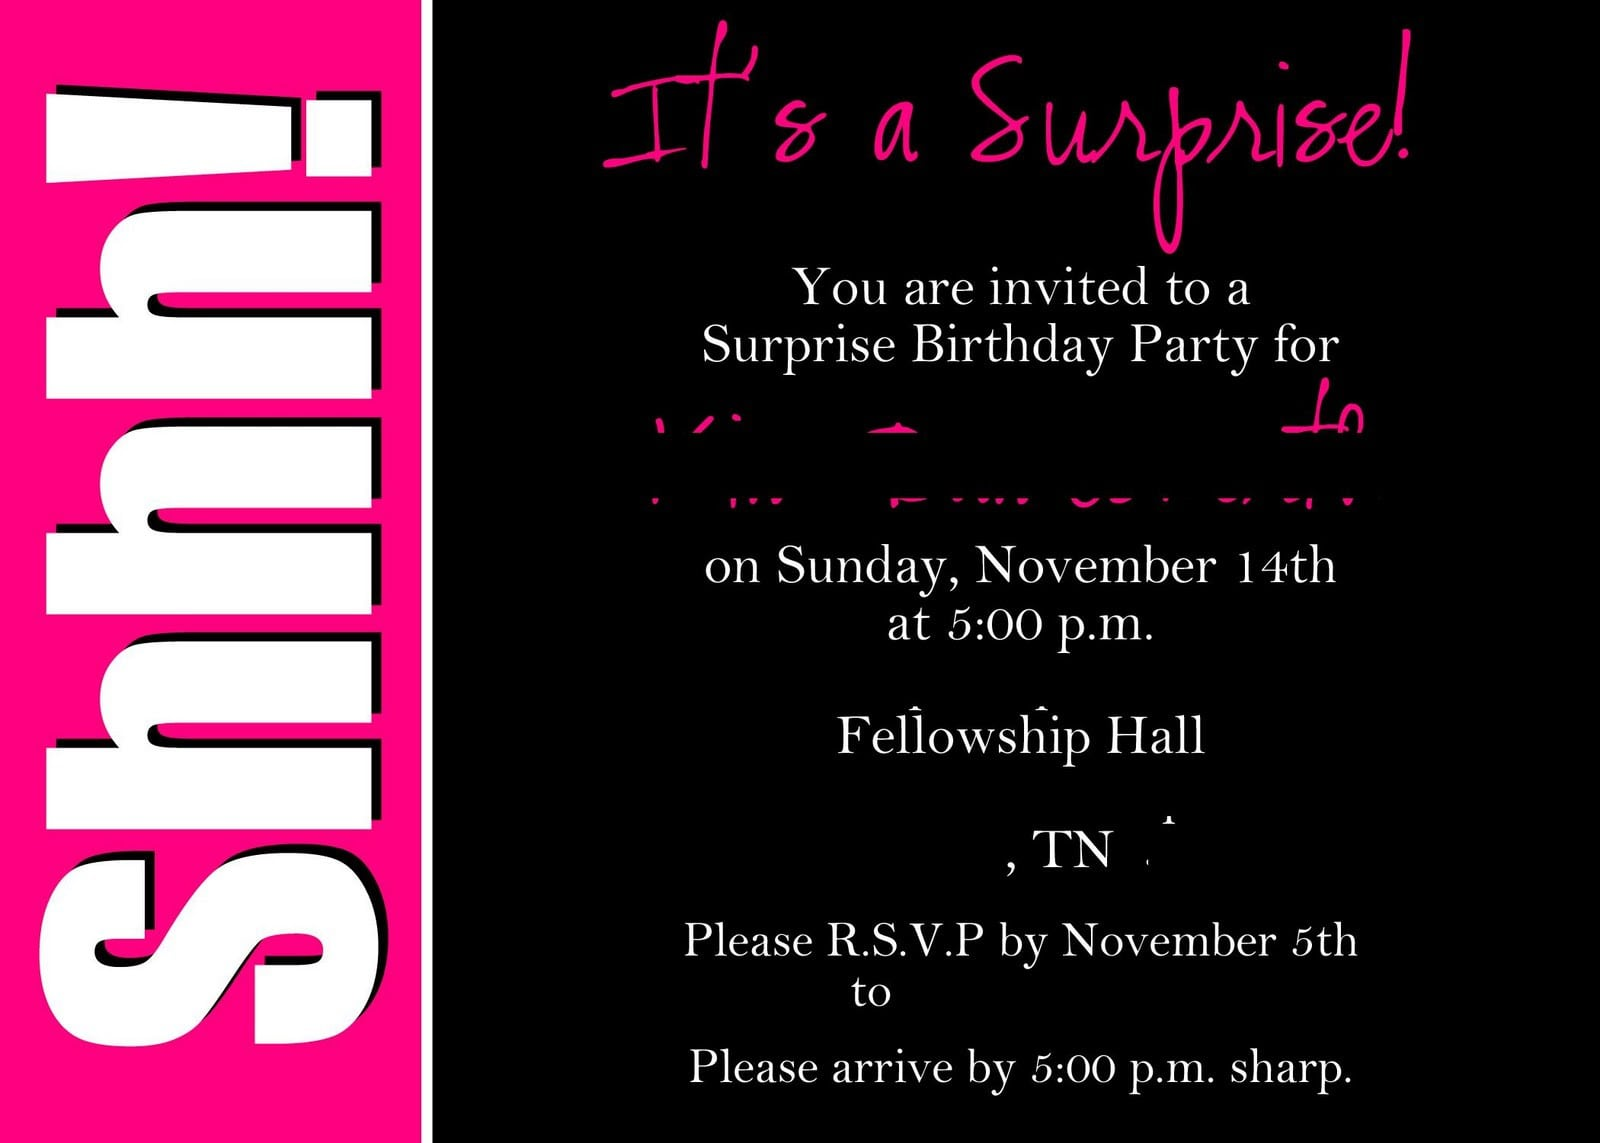 Pics Photos - Surprise Birthday Party Invitations On At The Beach 50th ...: funny-pictures.picphotos.net/surprise-birthday-party-invitations-on...